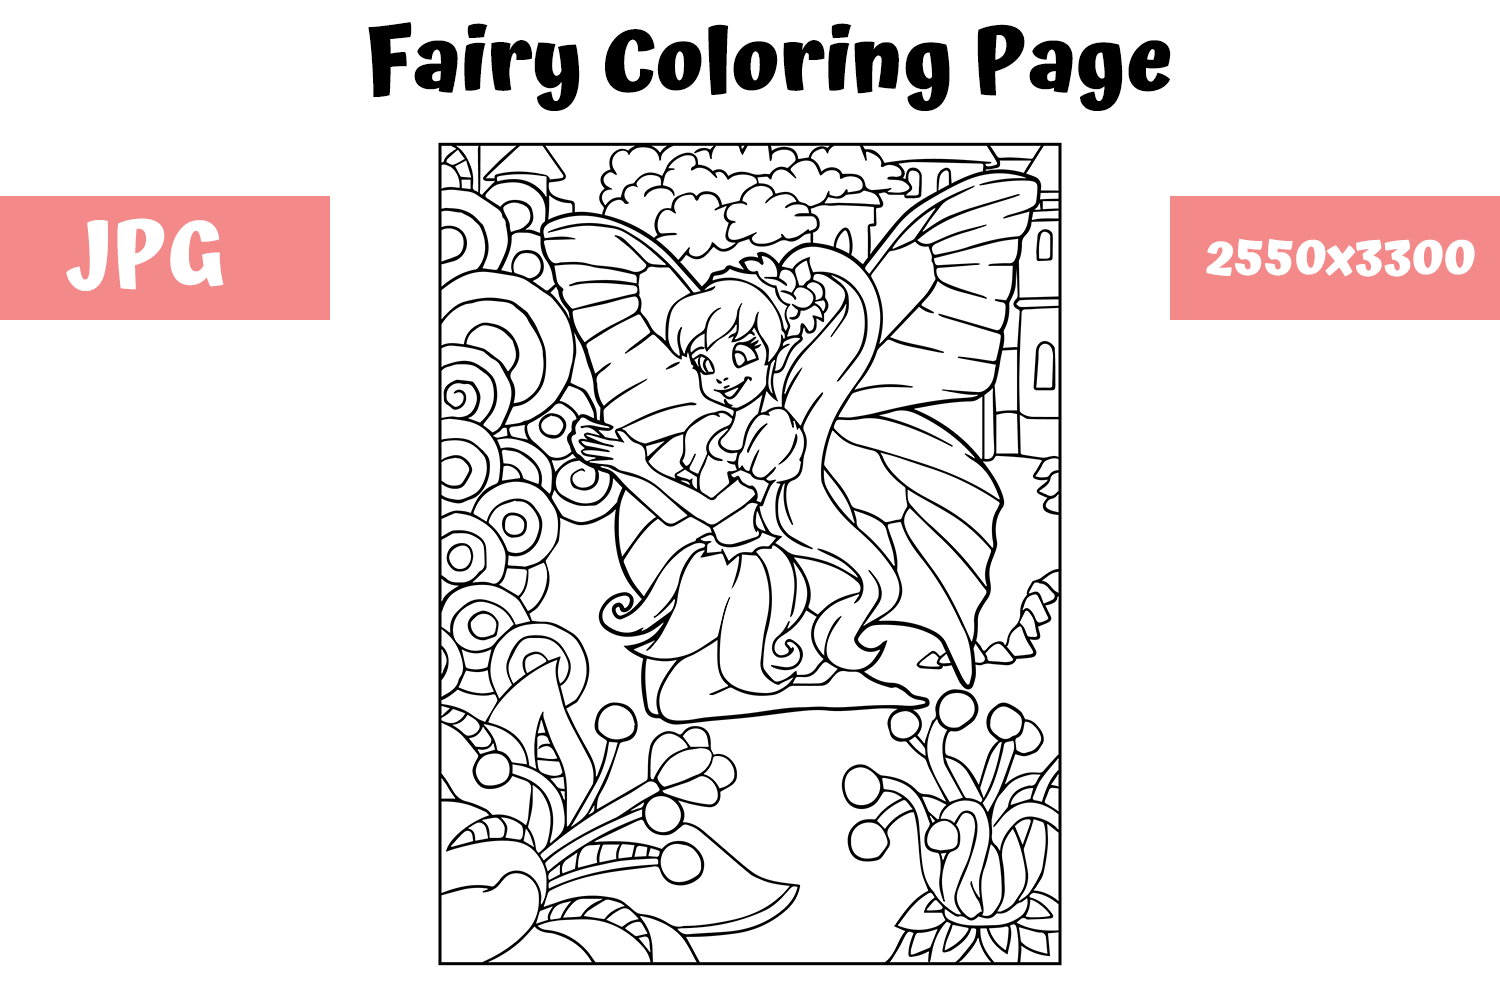 Download Free Fairy Coloring Page For Kids Graphic By Mybeautifulfiles for Cricut Explore, Silhouette and other cutting machines.